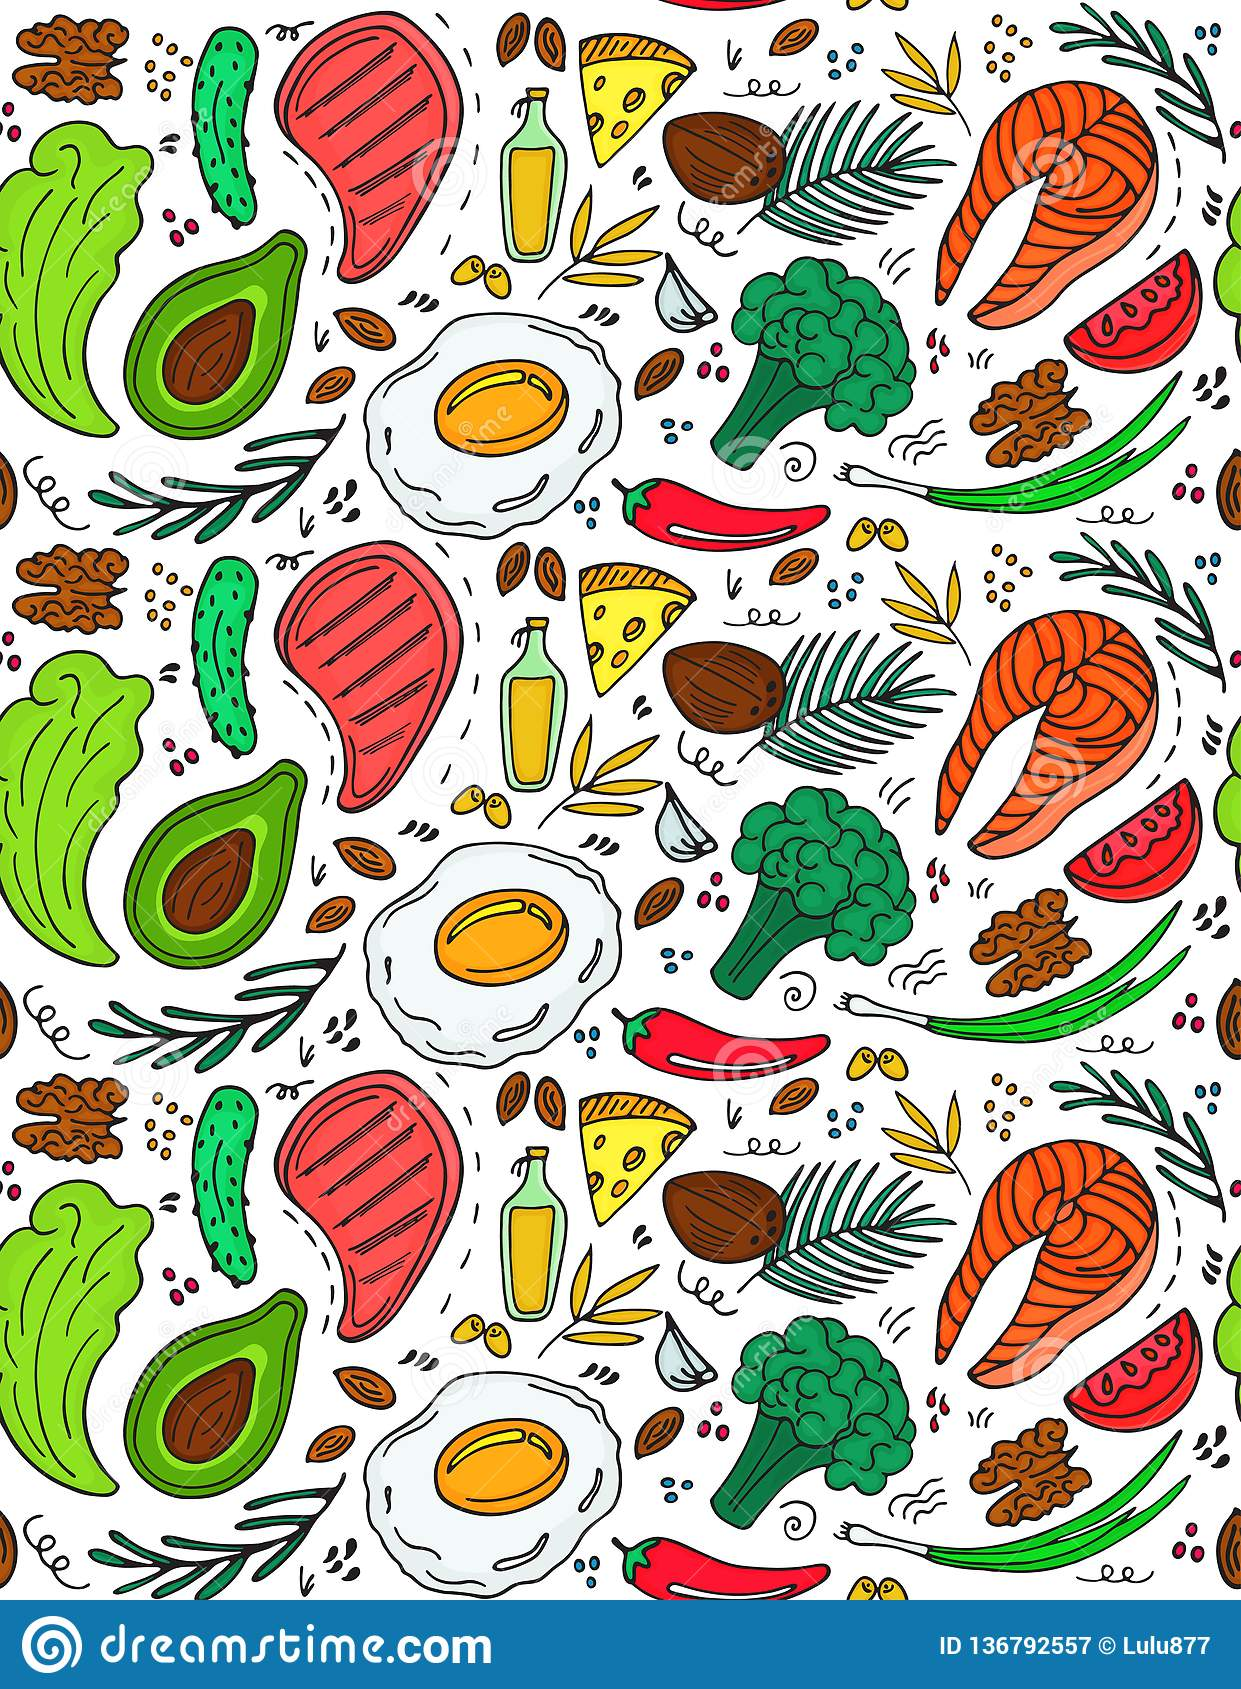 Ketogenic diet seamless pattern in hand drawn doodle style. Low carb dieting. Paleo nutrition. Keto meal protein and fat